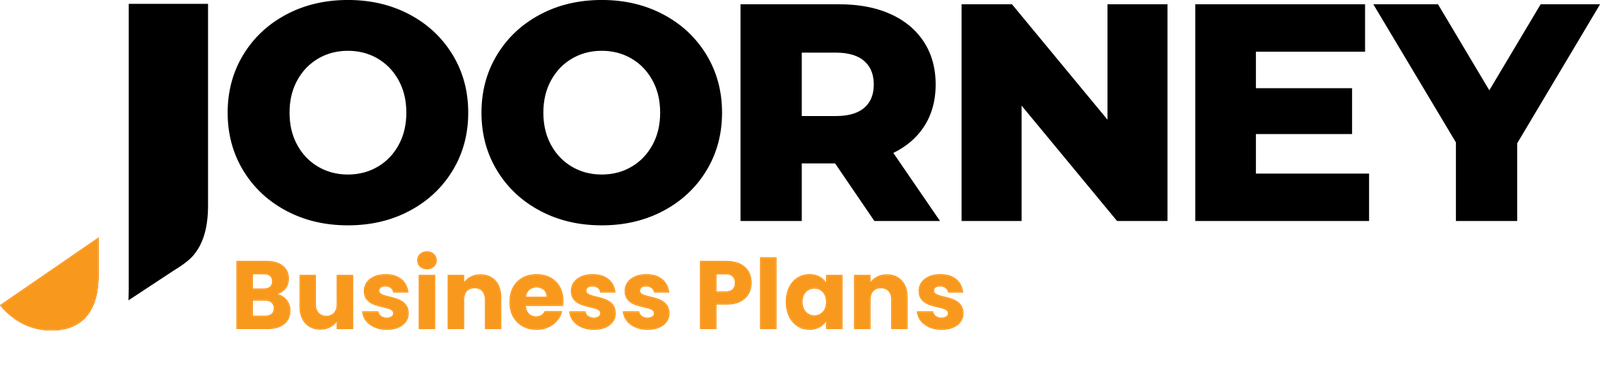 Joorney Business Plans-logo